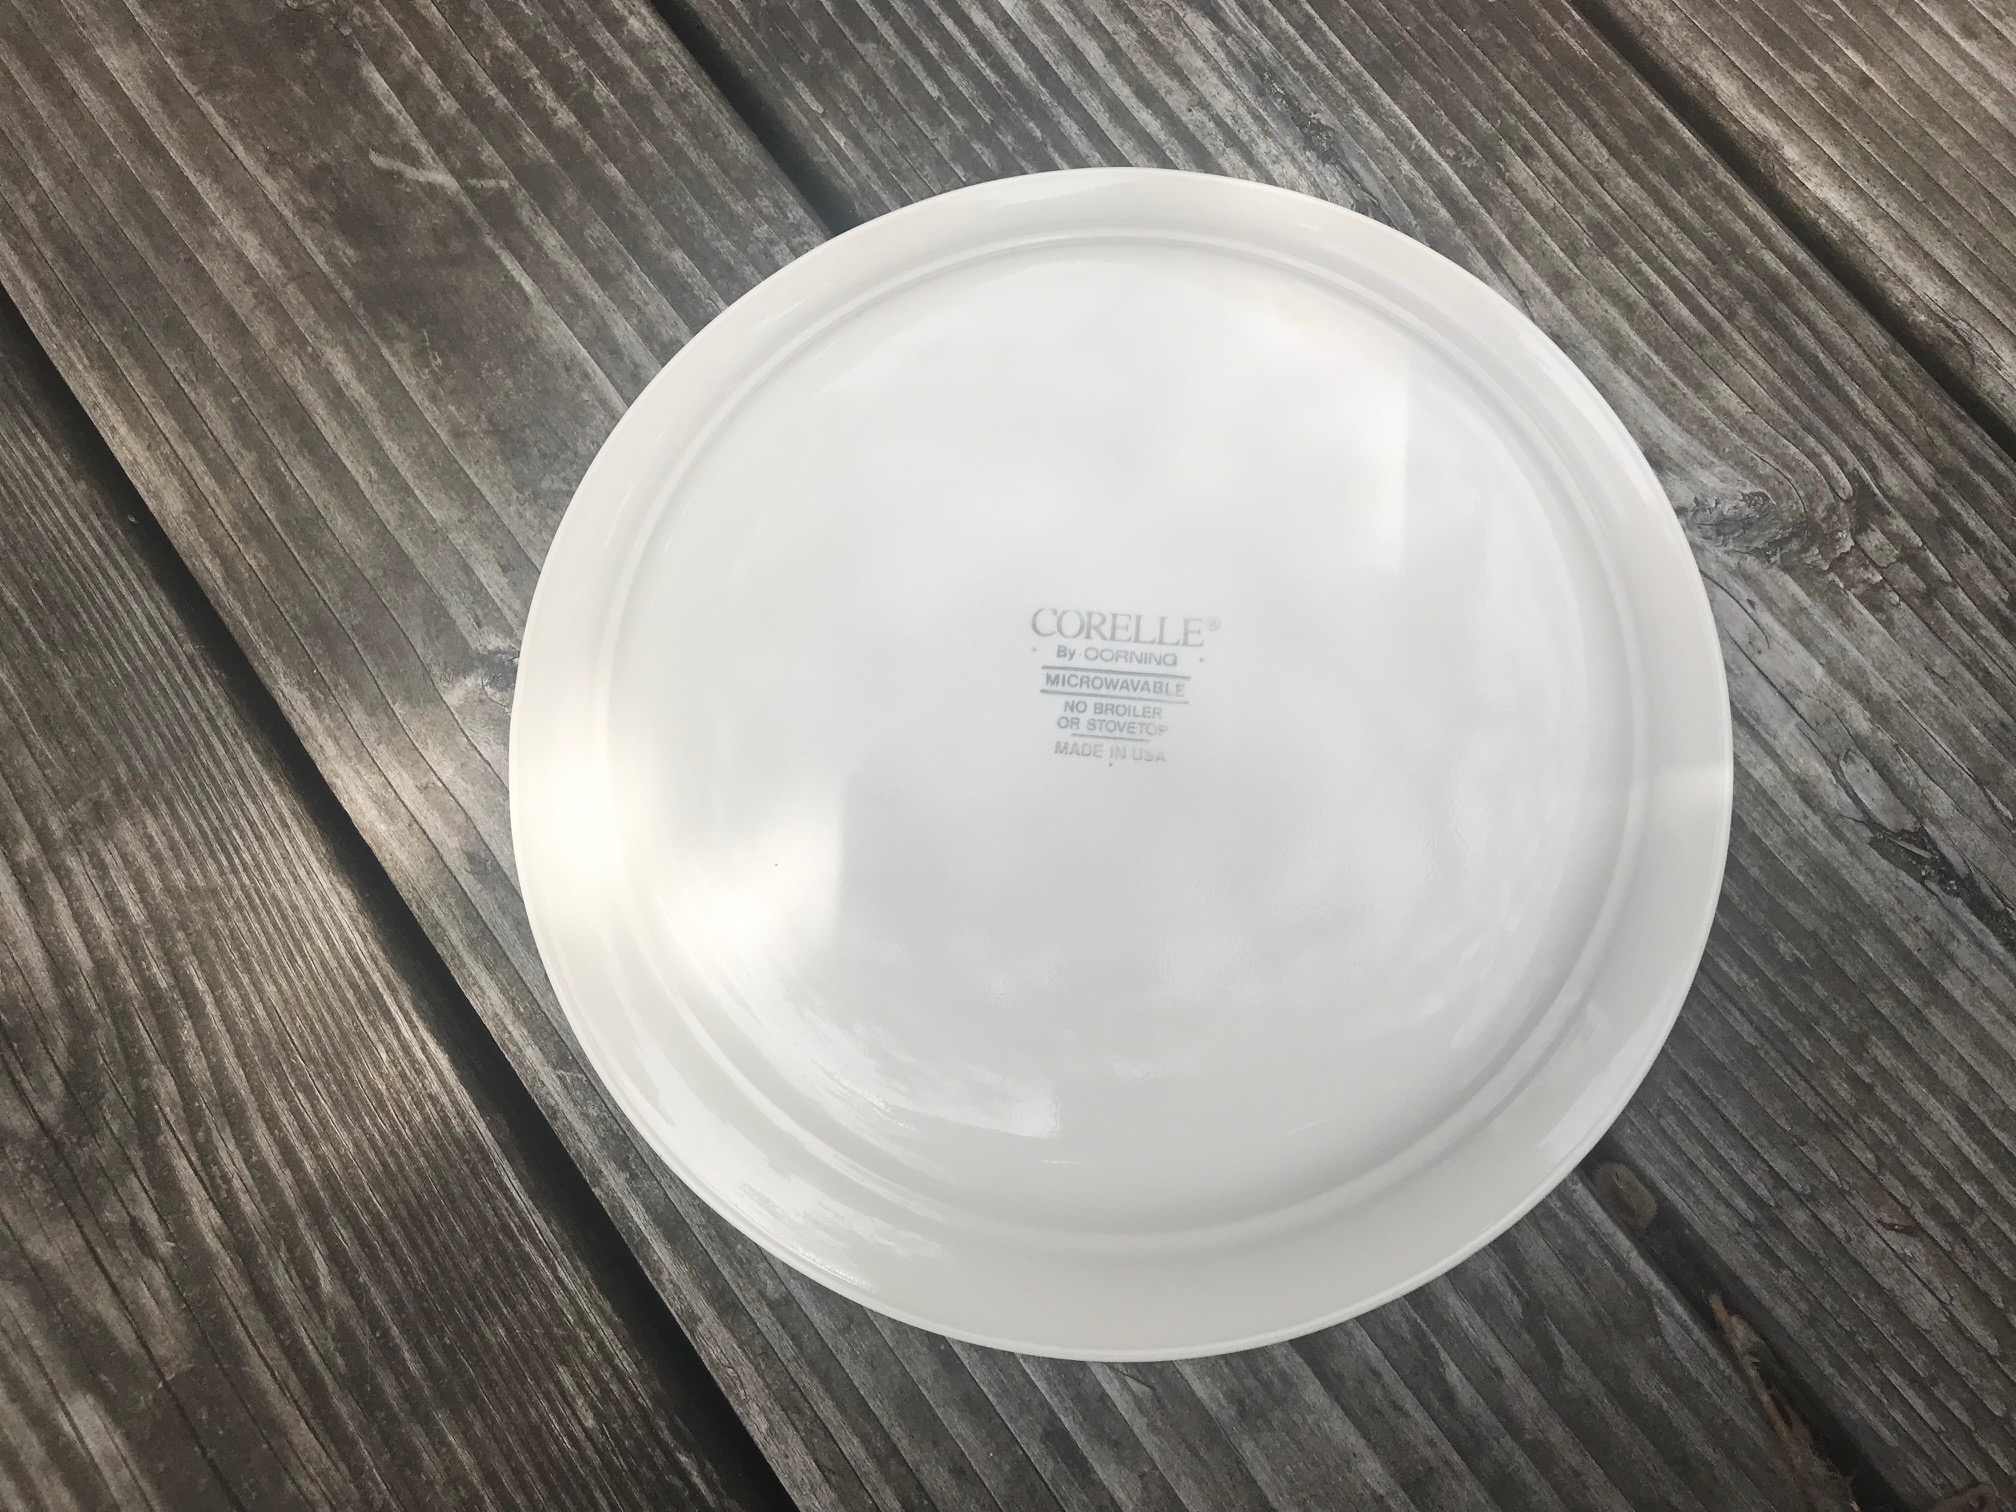 Vintage Corelle Cream Plate with Fruit Pattern: 14,900 +/- 400 ppm Lead & 327 +/- 20 ppm Cadmium